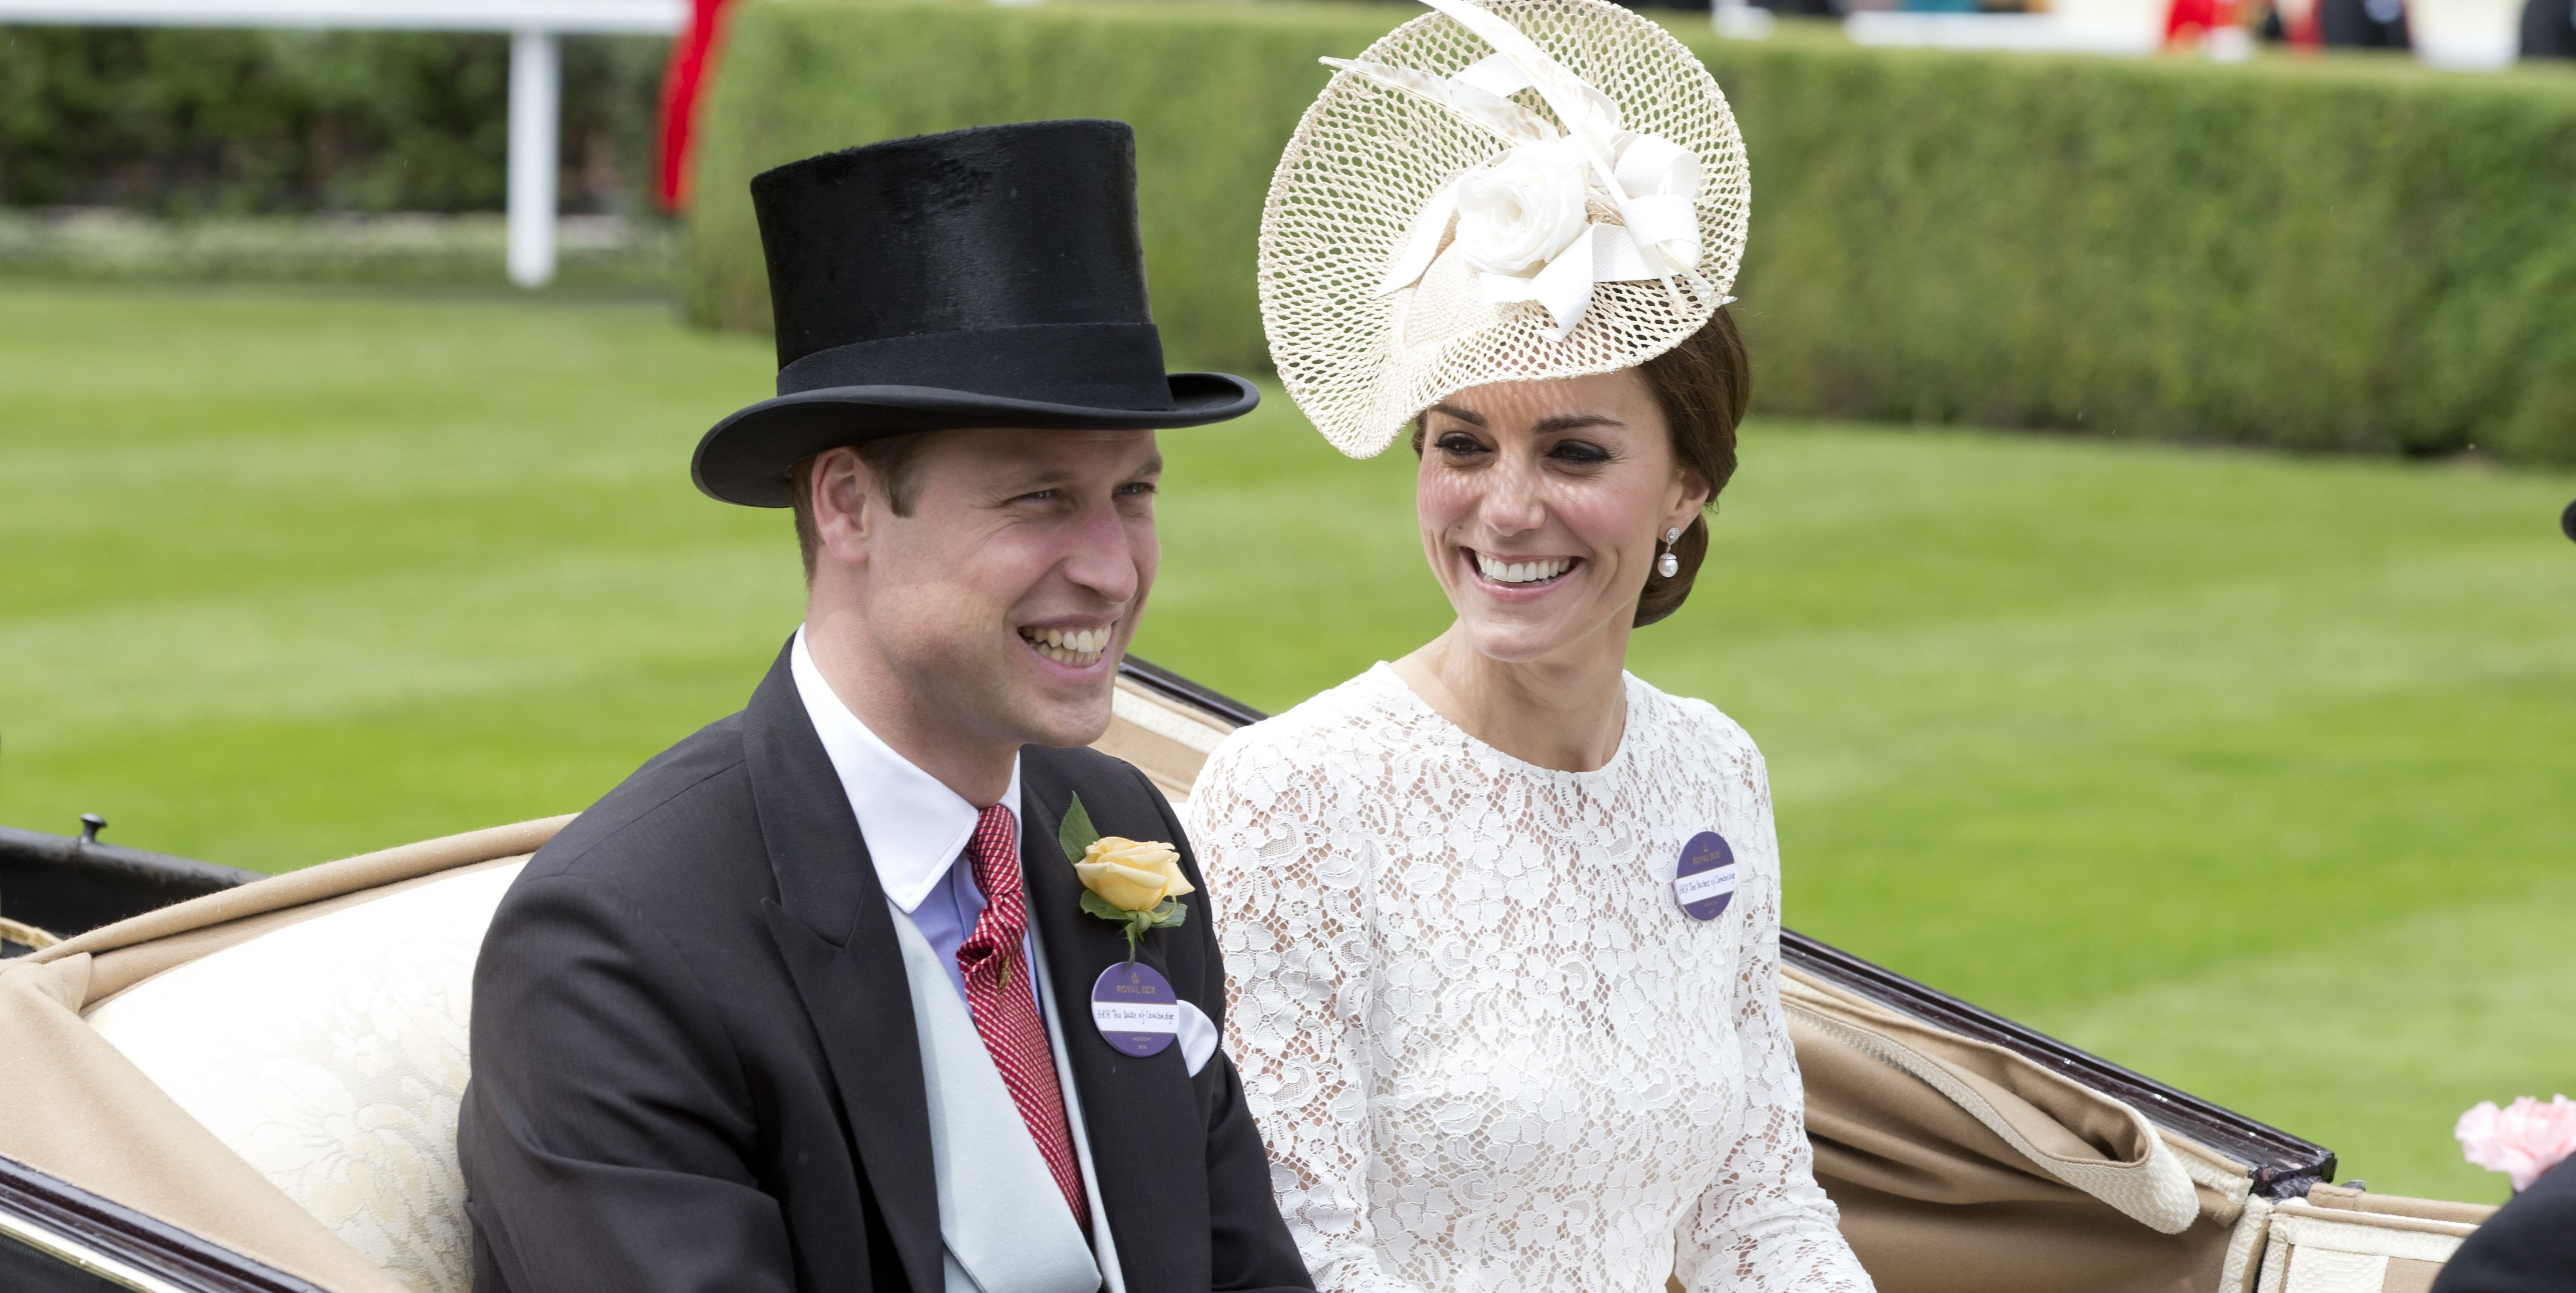 Here's Why Prince William and Kate Middleton Skipped the Royal Ascot Today